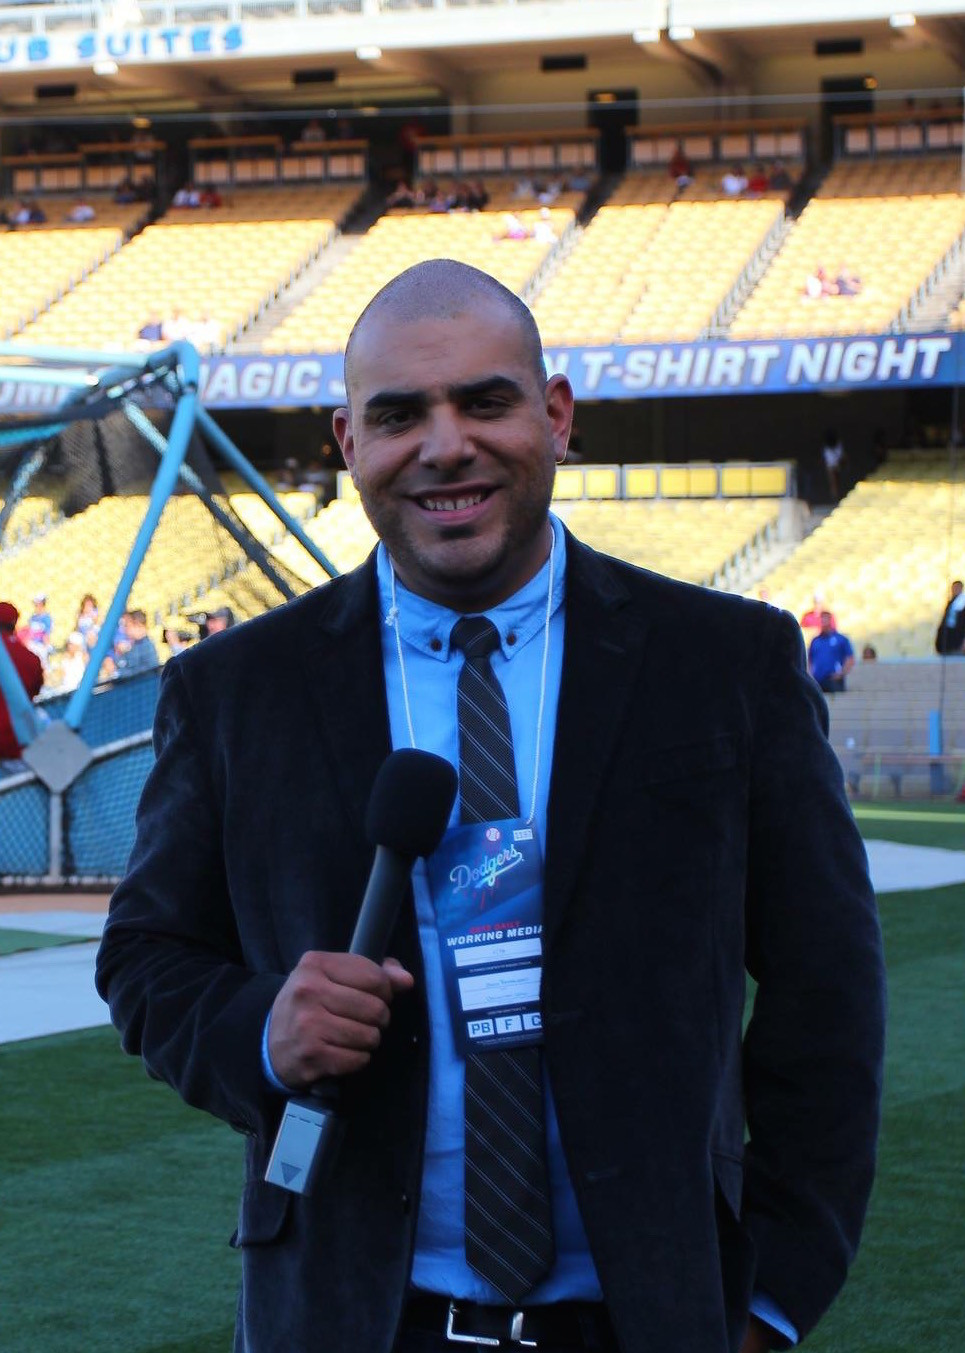 Jason Barquero covers a Dodgers game as a freelance reporter in 2013.